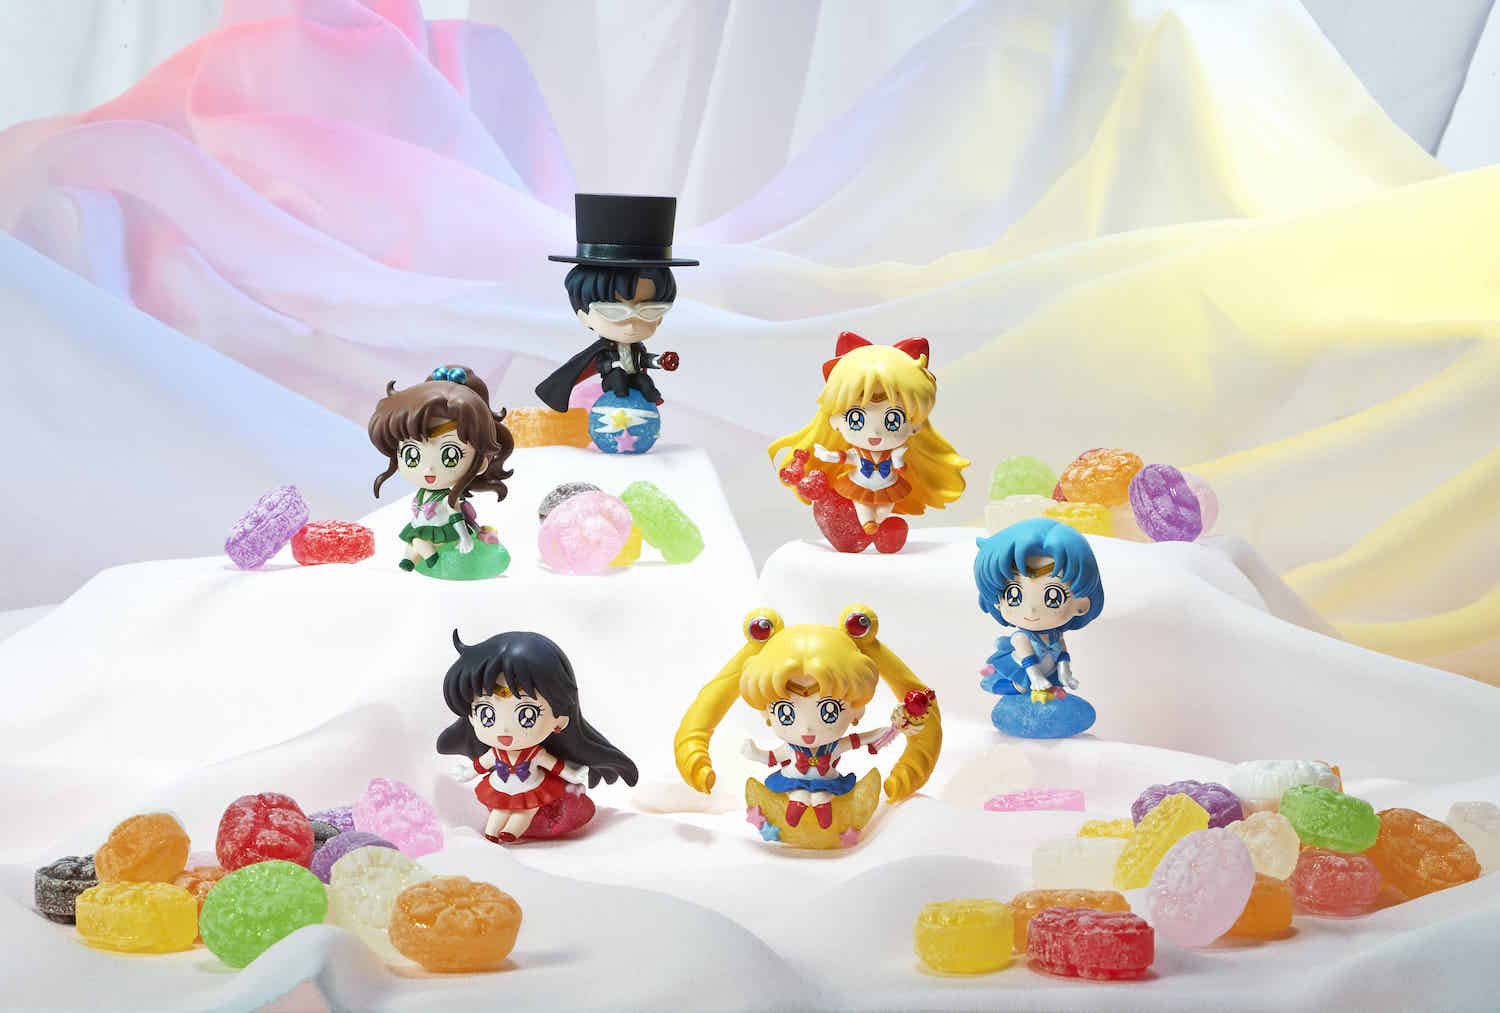 PRETTY SOLDIER SAILOR MOON MAKE UP WITH CANDY! DISPLAY 6 FIG 6 CM PETIT CHARA